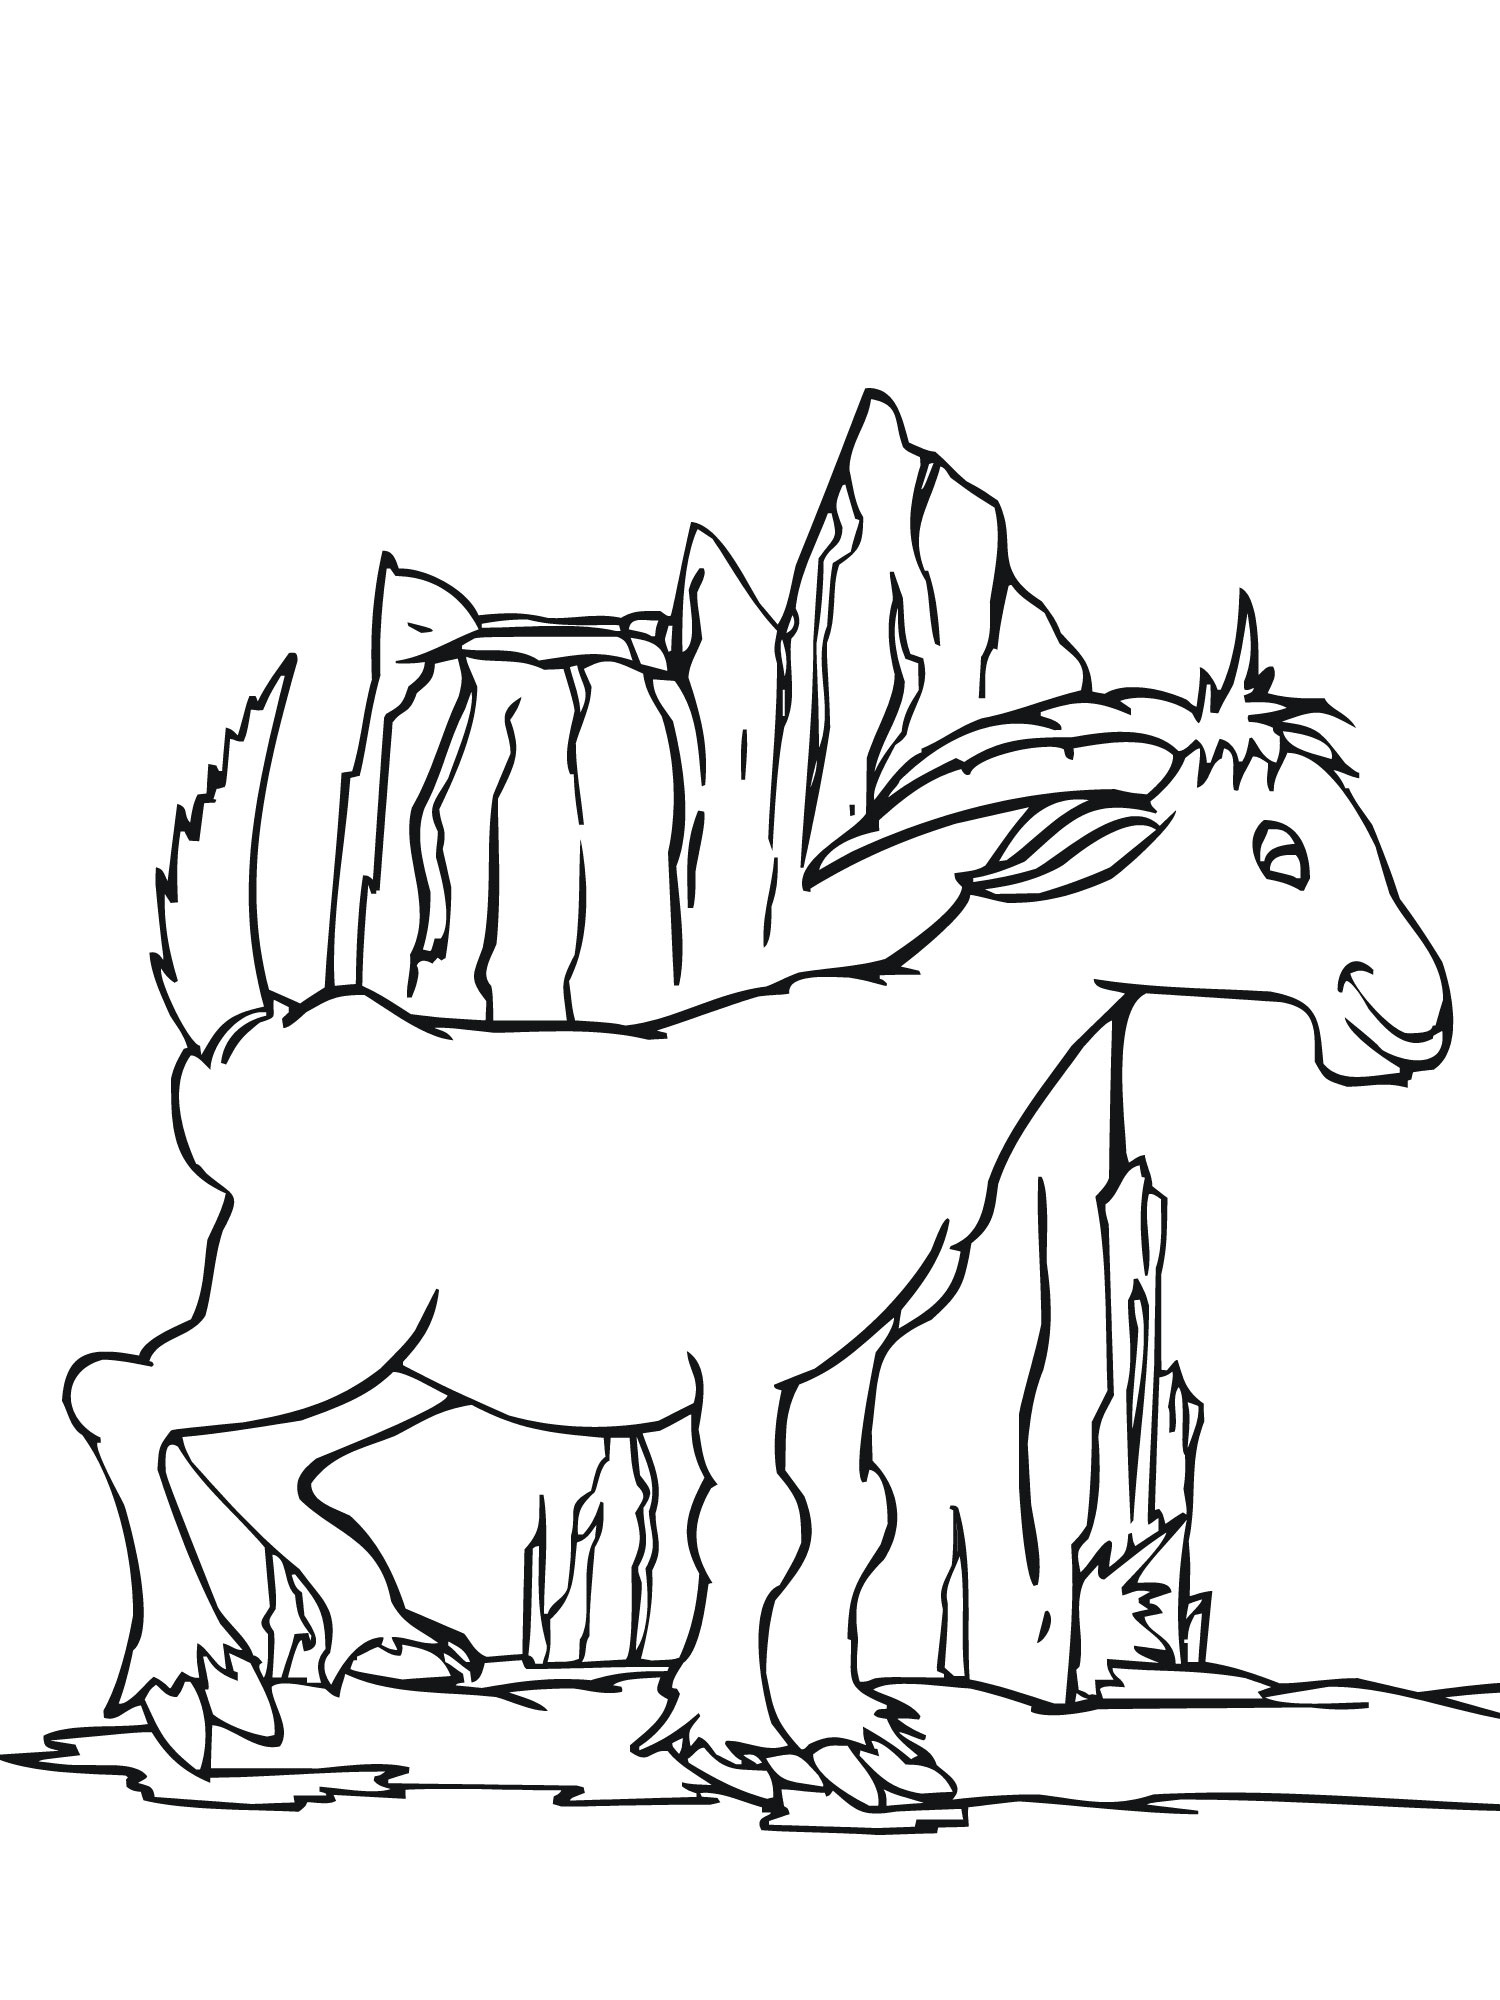 Goats Colouring Pages Sketch Coloring Page